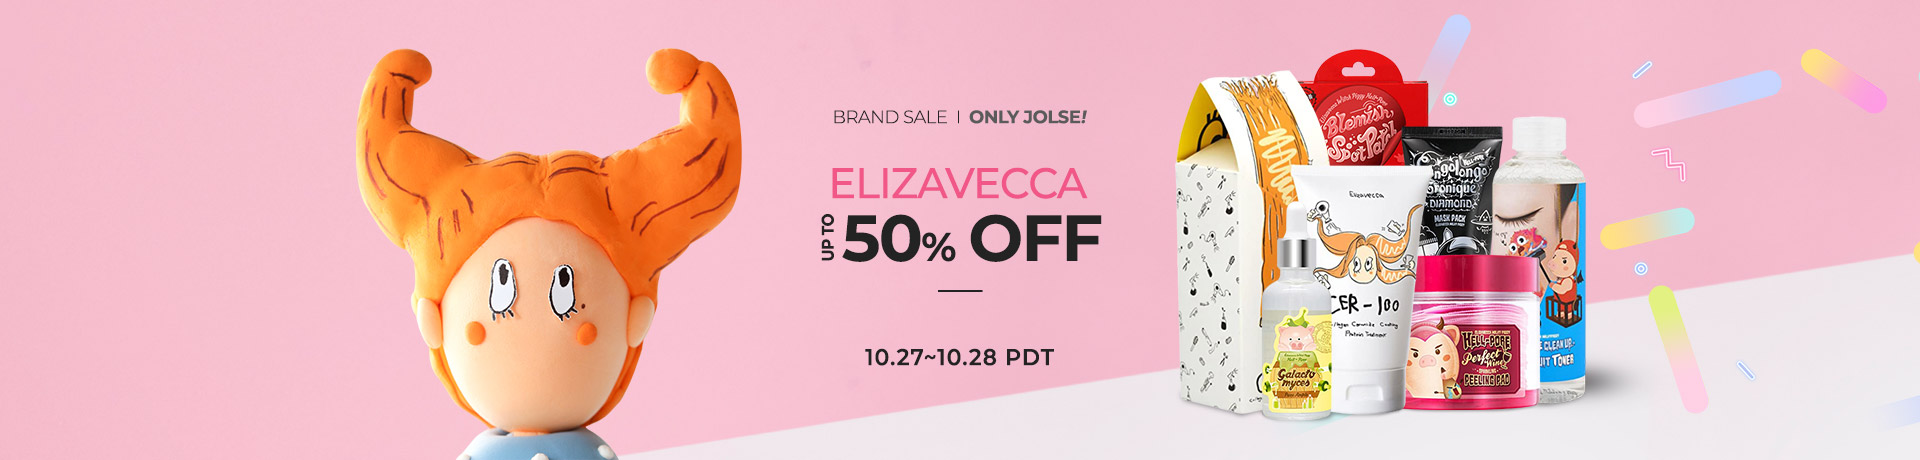 Elizavecca Up to 50% OFF